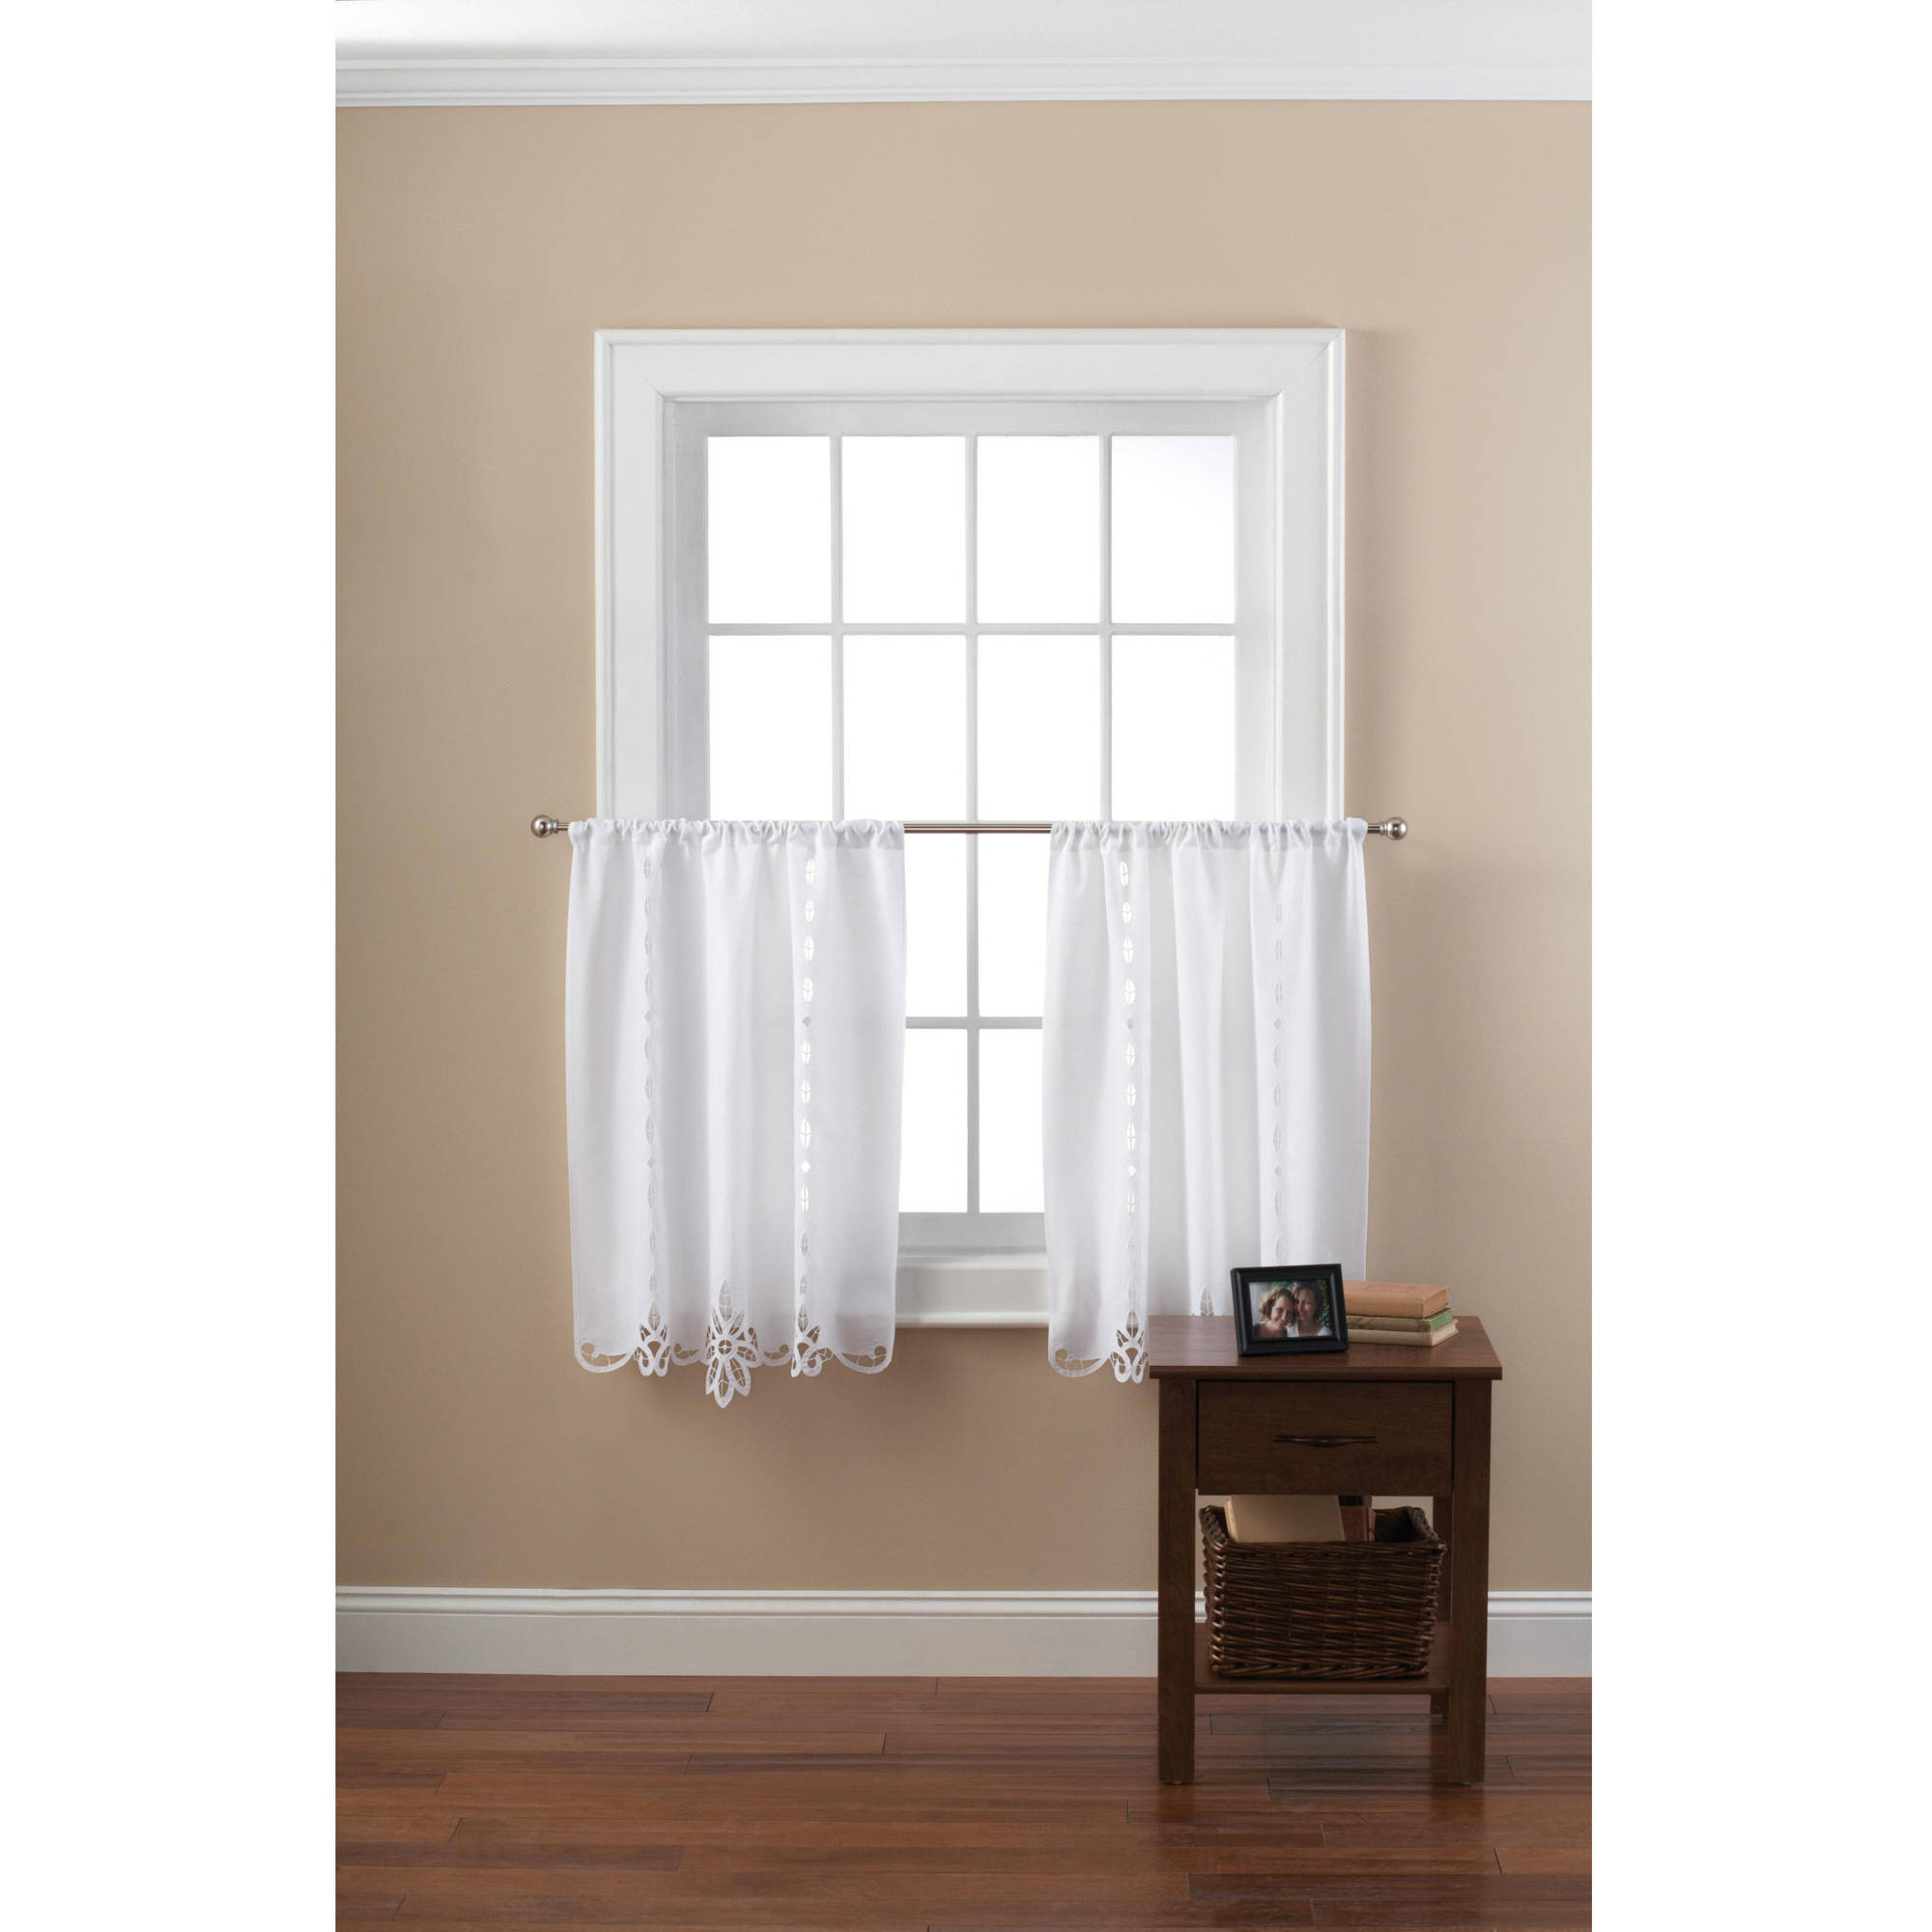 Mainstays Battenburg White Lace Kitchen Curtains, Set Of 2 – Walmart In 2020 Classic Black And White Curtain Tiers (View 14 of 20)